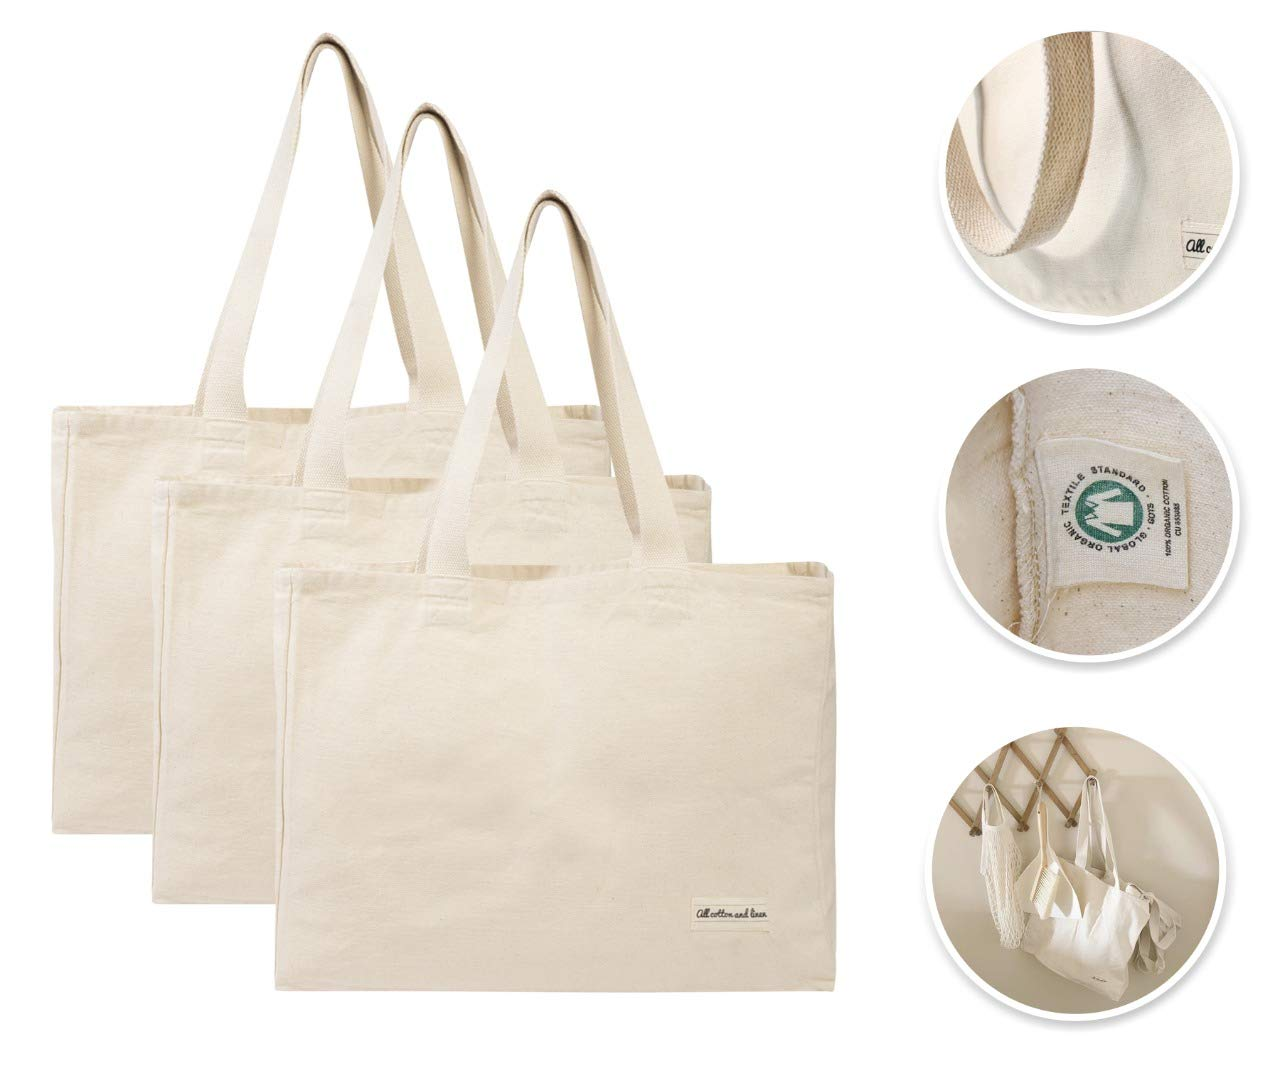 Cotton Shopping Tote Bags - Canvas Grocery Shopping Bags with Handles - Cloth Grocery Tote Bags - Reusable Grocery Bags - Organic Shopping Tote Washable - Cotton Tote Bag Eco-friendly(3 Bags Natural)